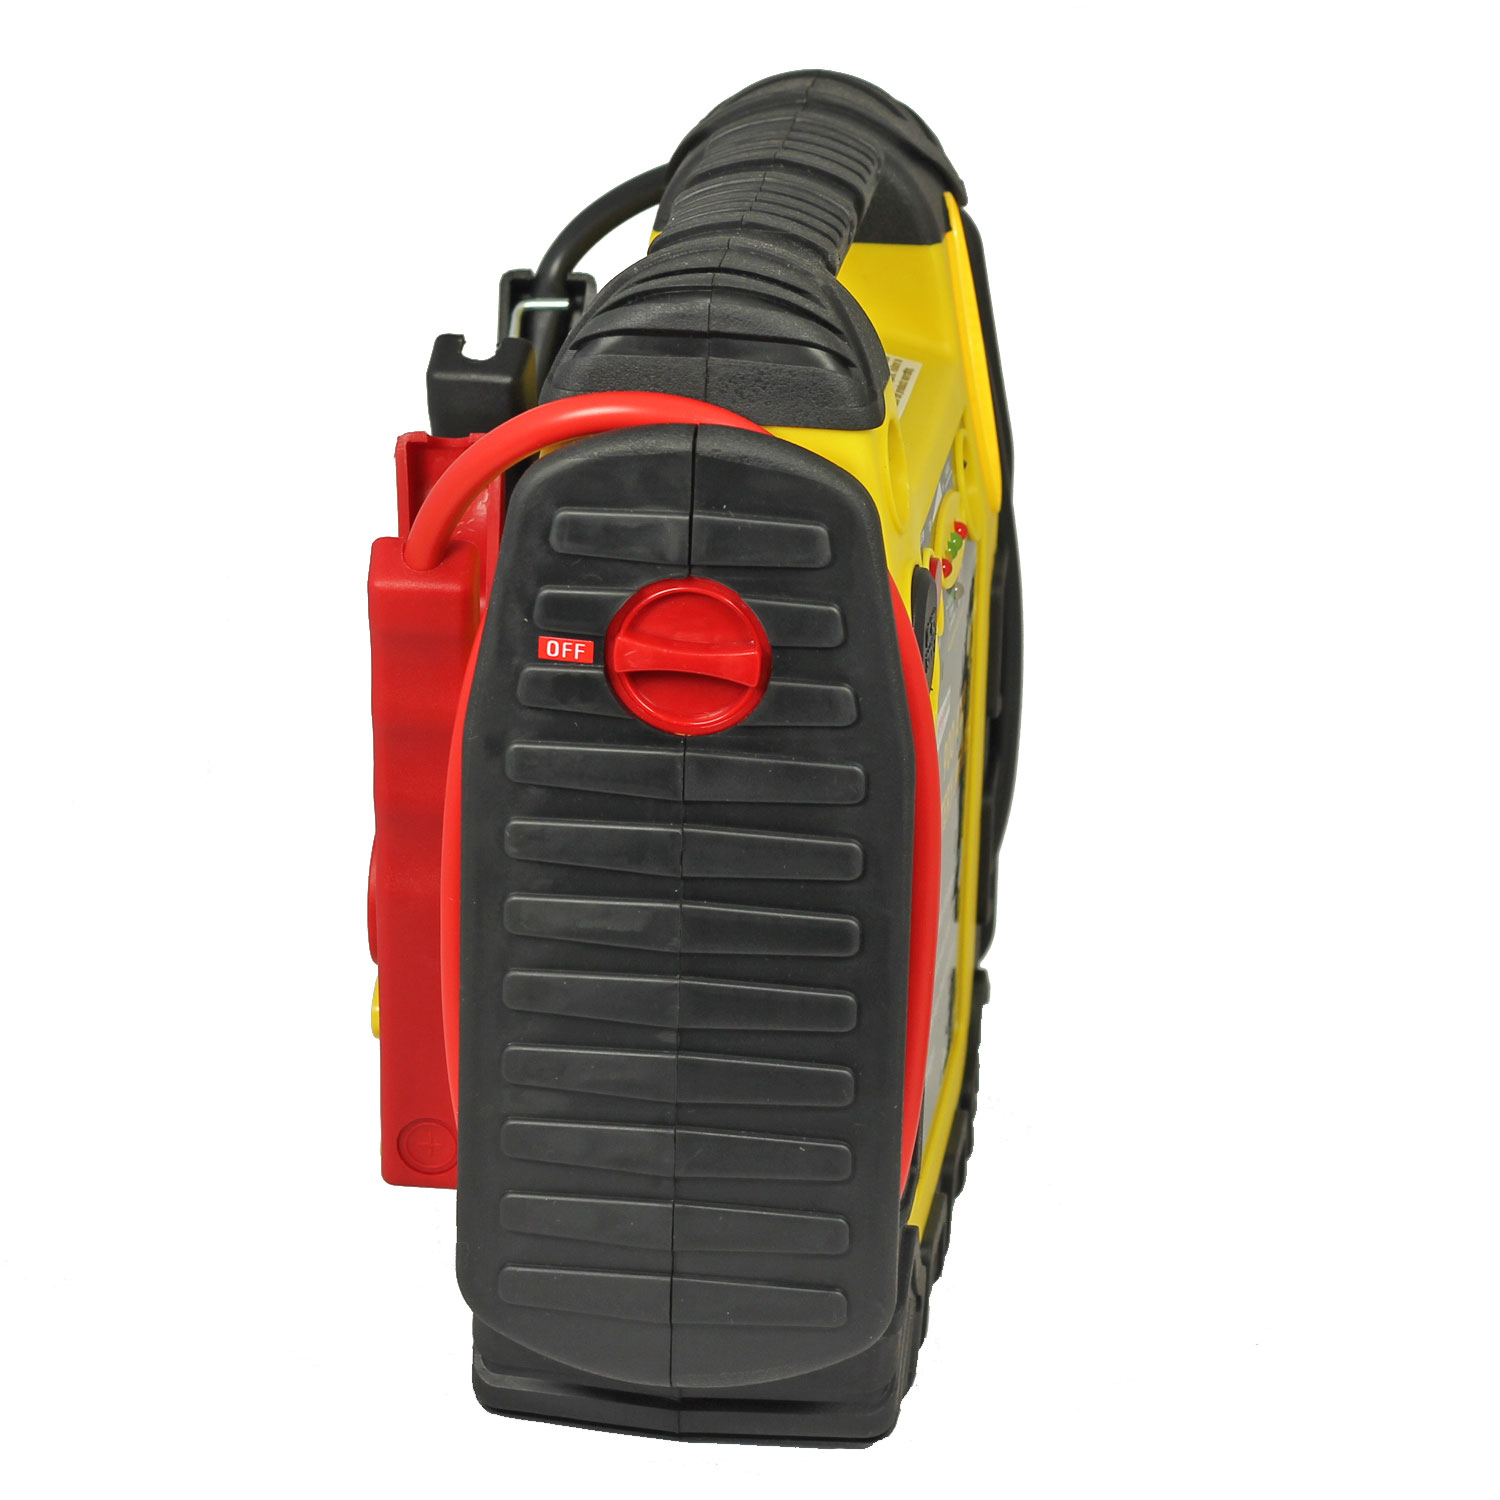 rescue 900 portable power pack manual